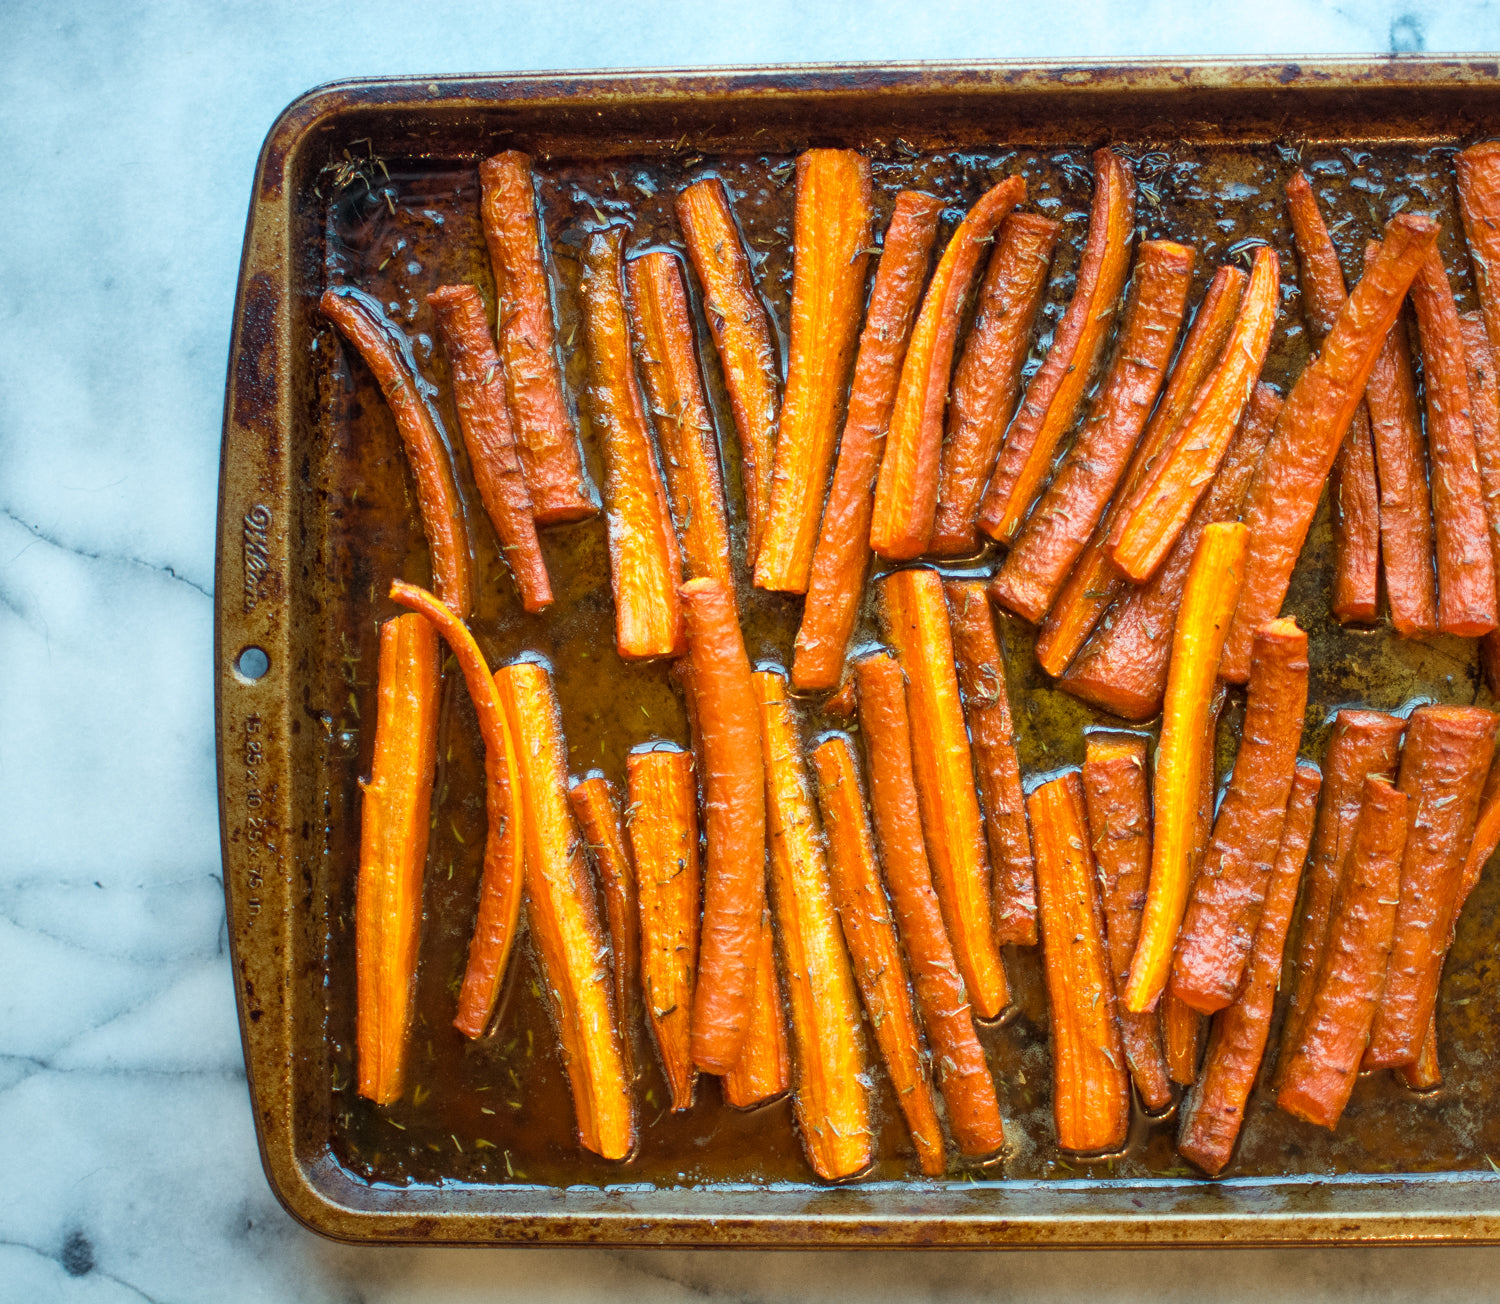 Roasted Carrots on Baking Sheet